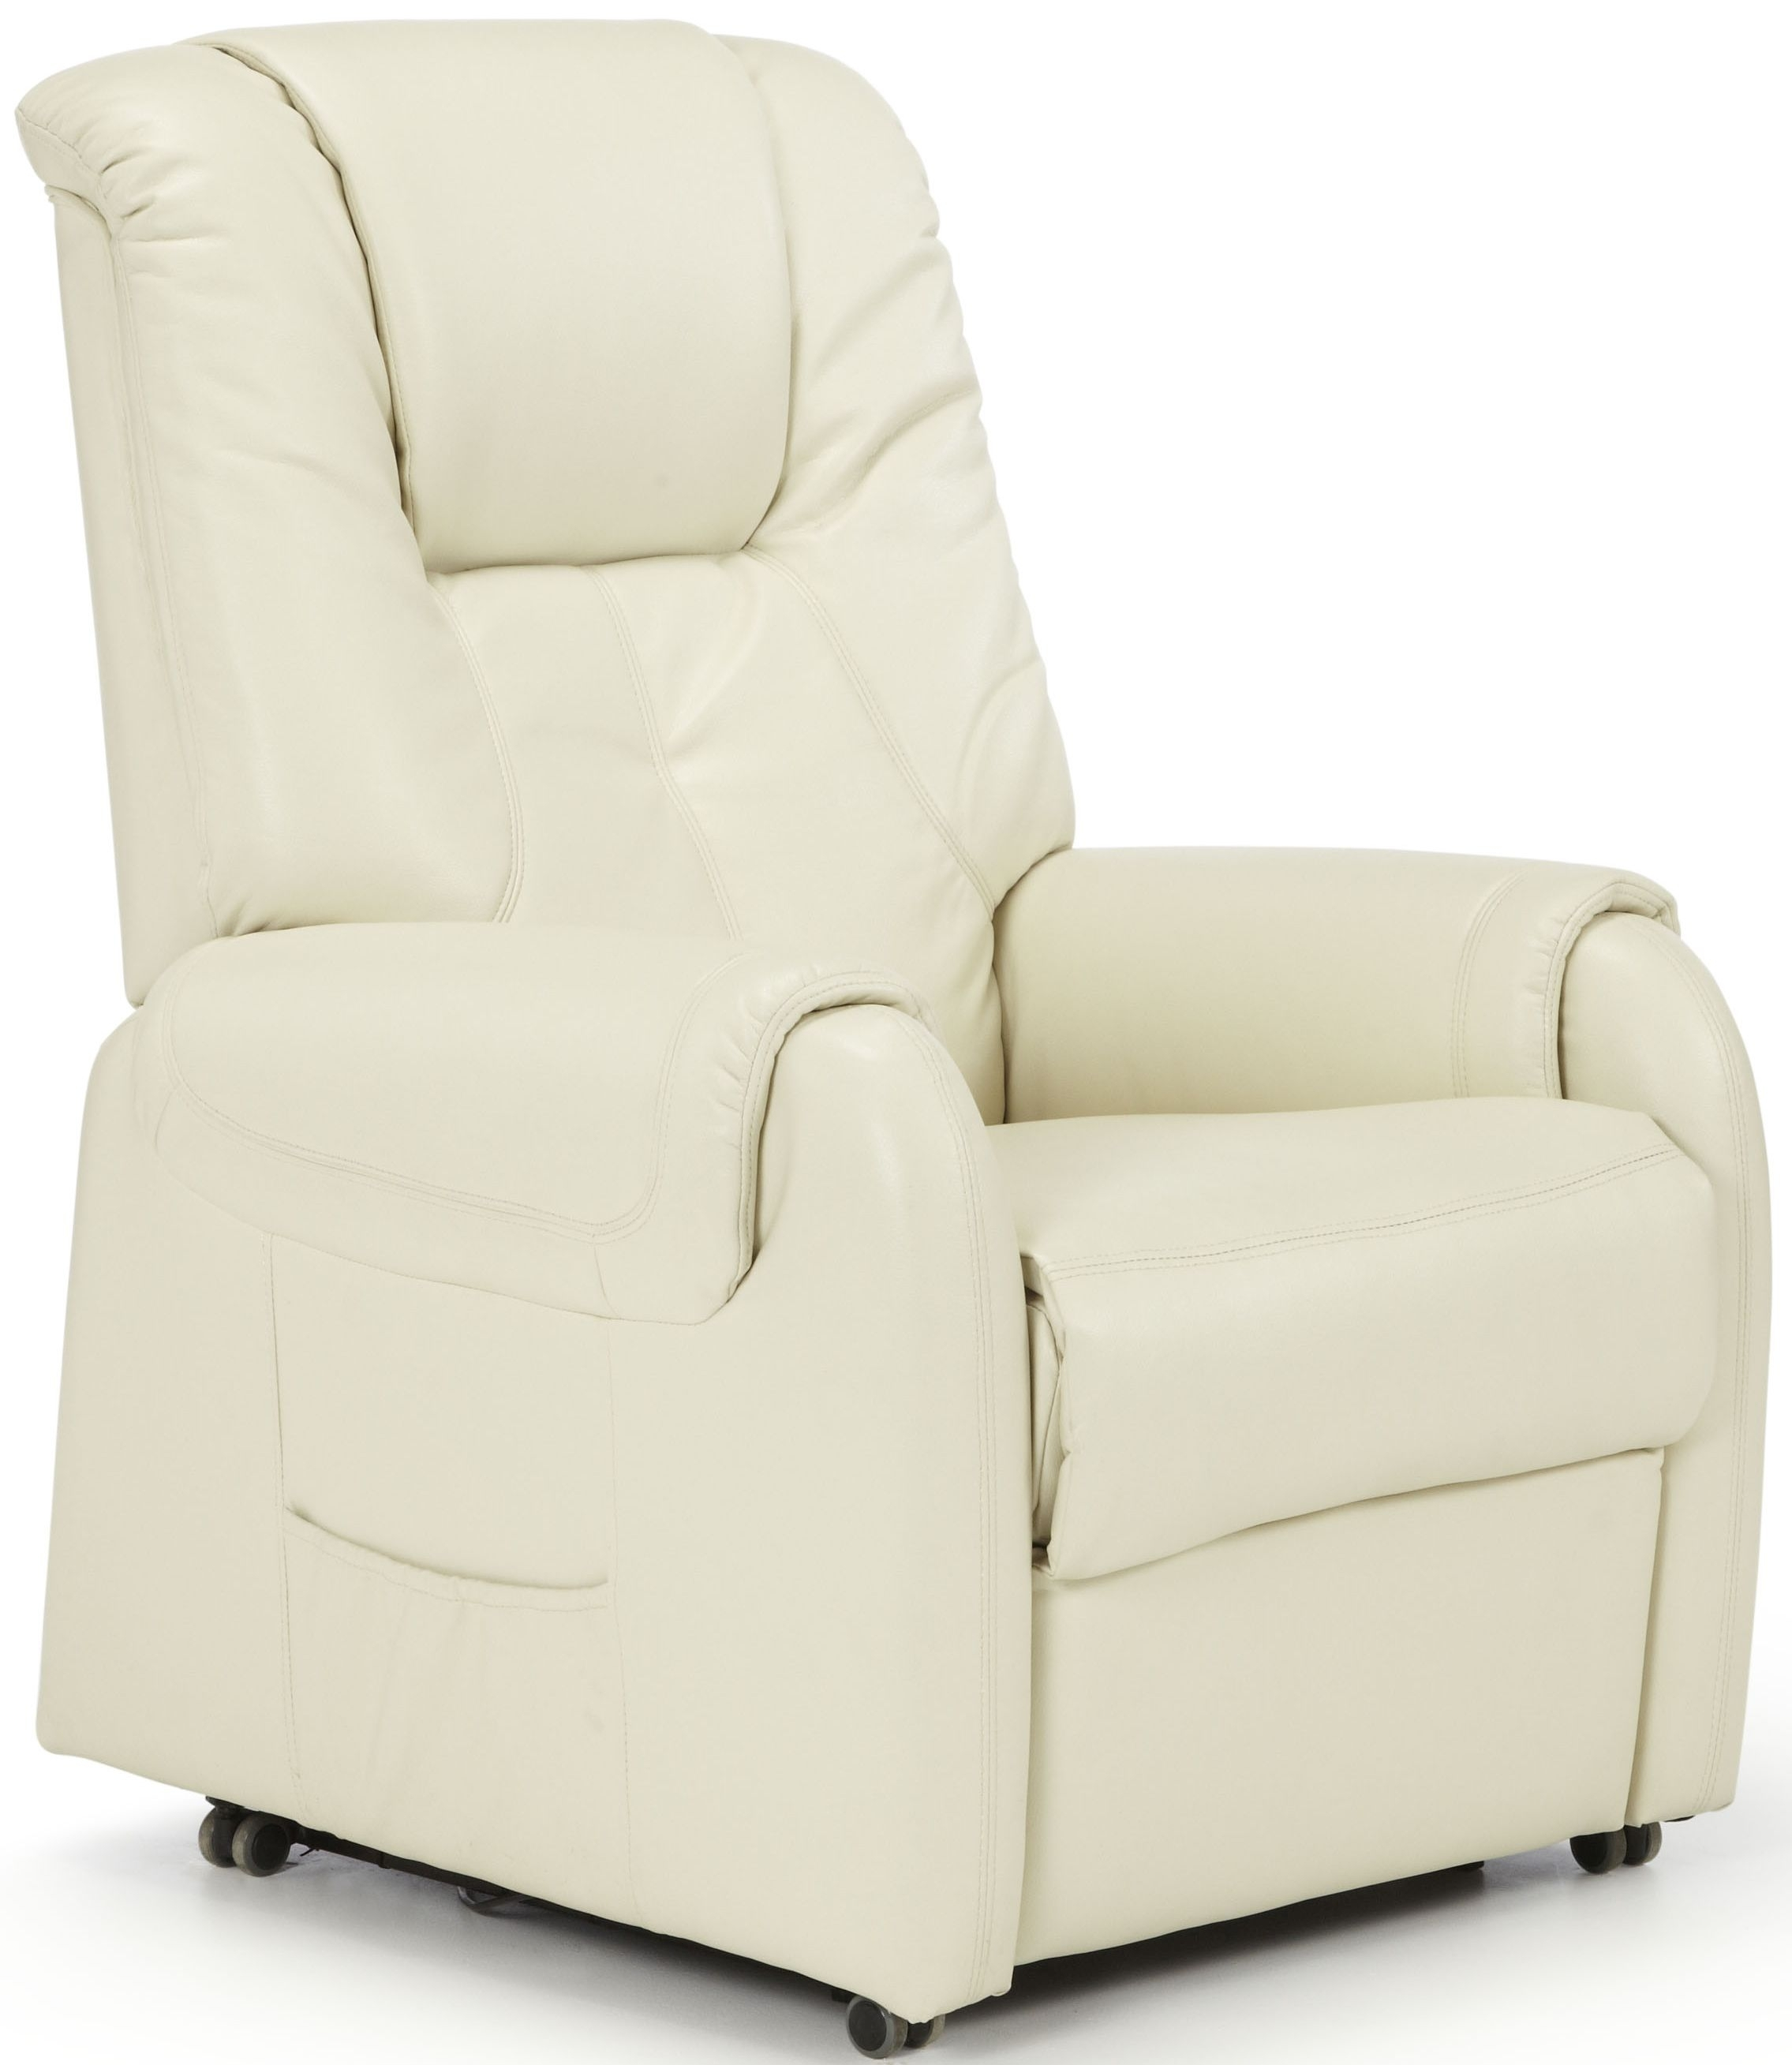 Serene Alta Cream Faux Leather Recliner Chair